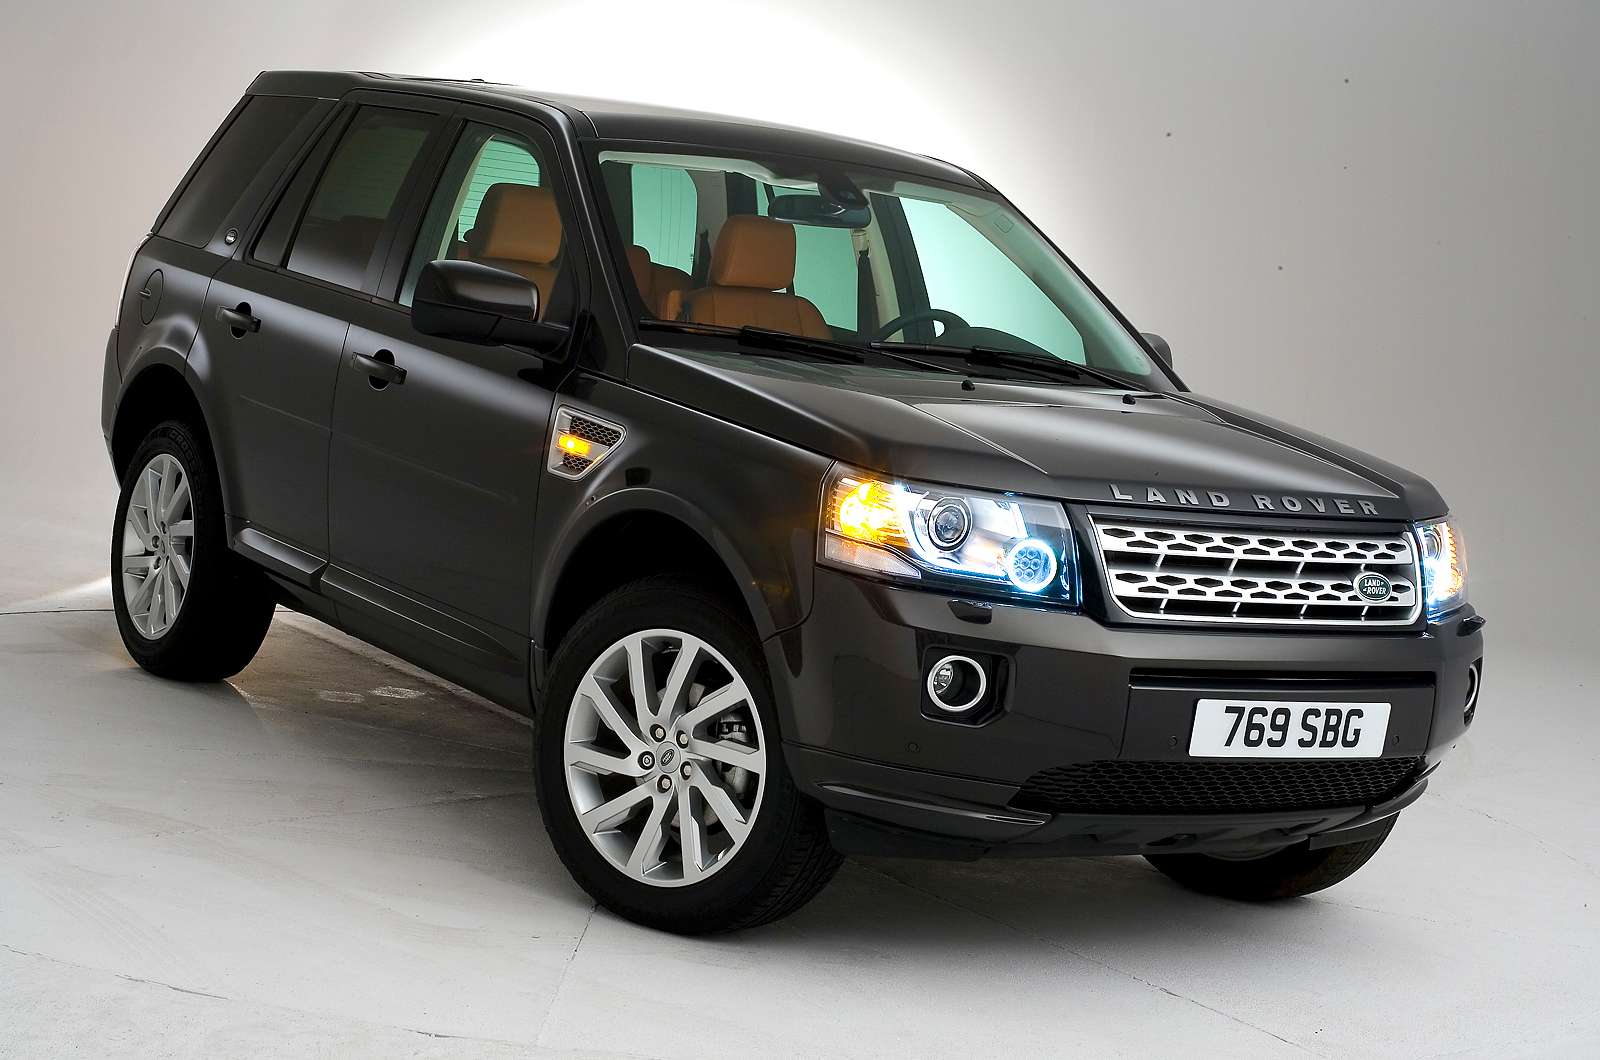 a car Land Rover Freelander 2 2013